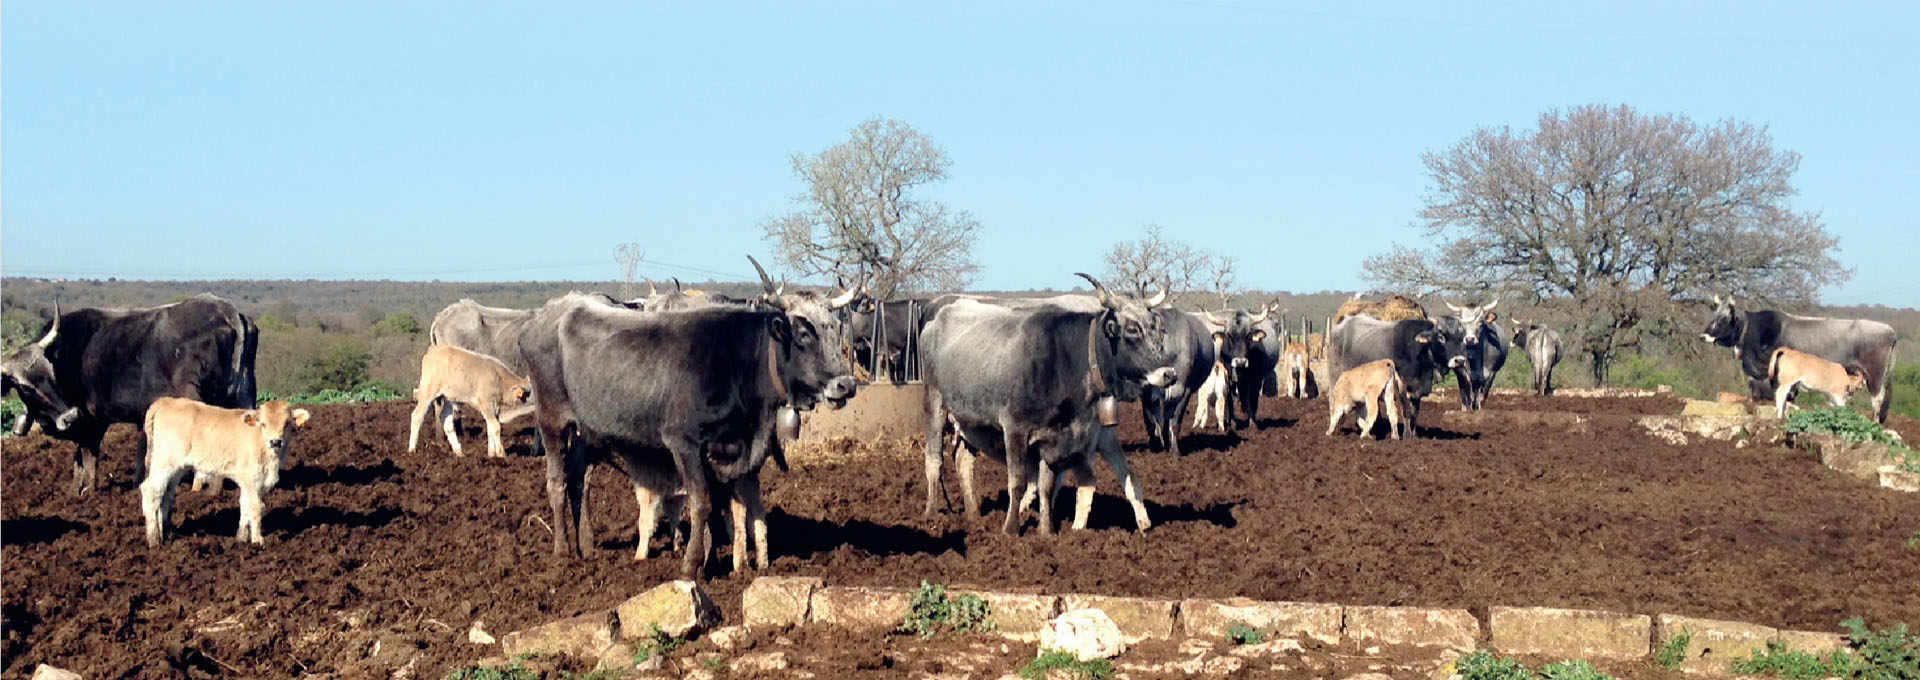 The Quality Milk and Meat of the Podolica Cattle Breed